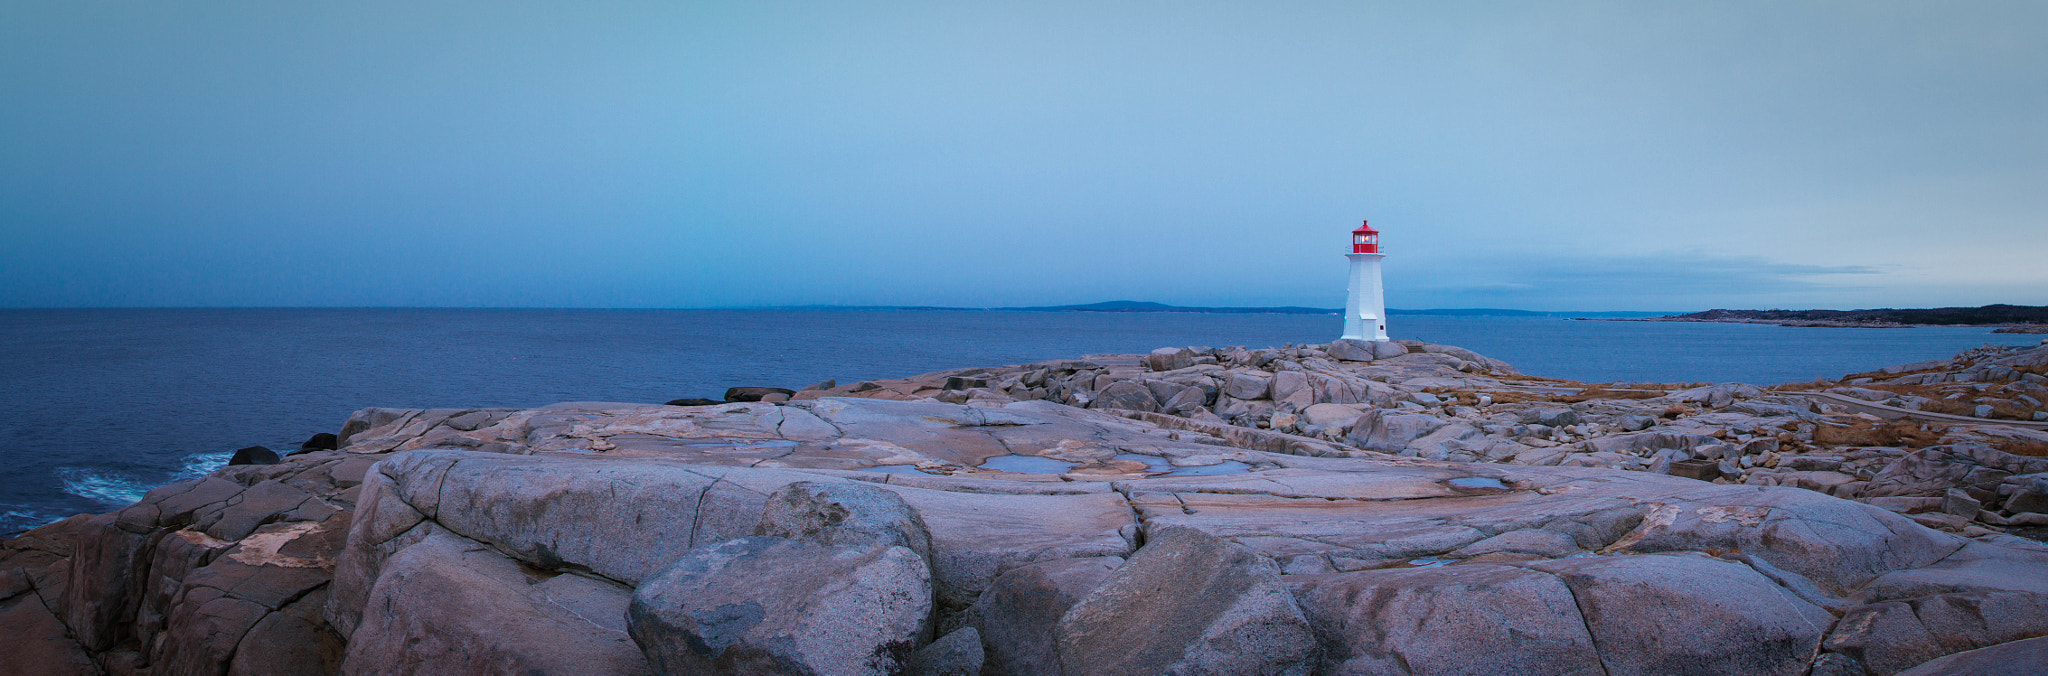 Photograph Peggy's Cove Panorama by Ash Furrow on 500px